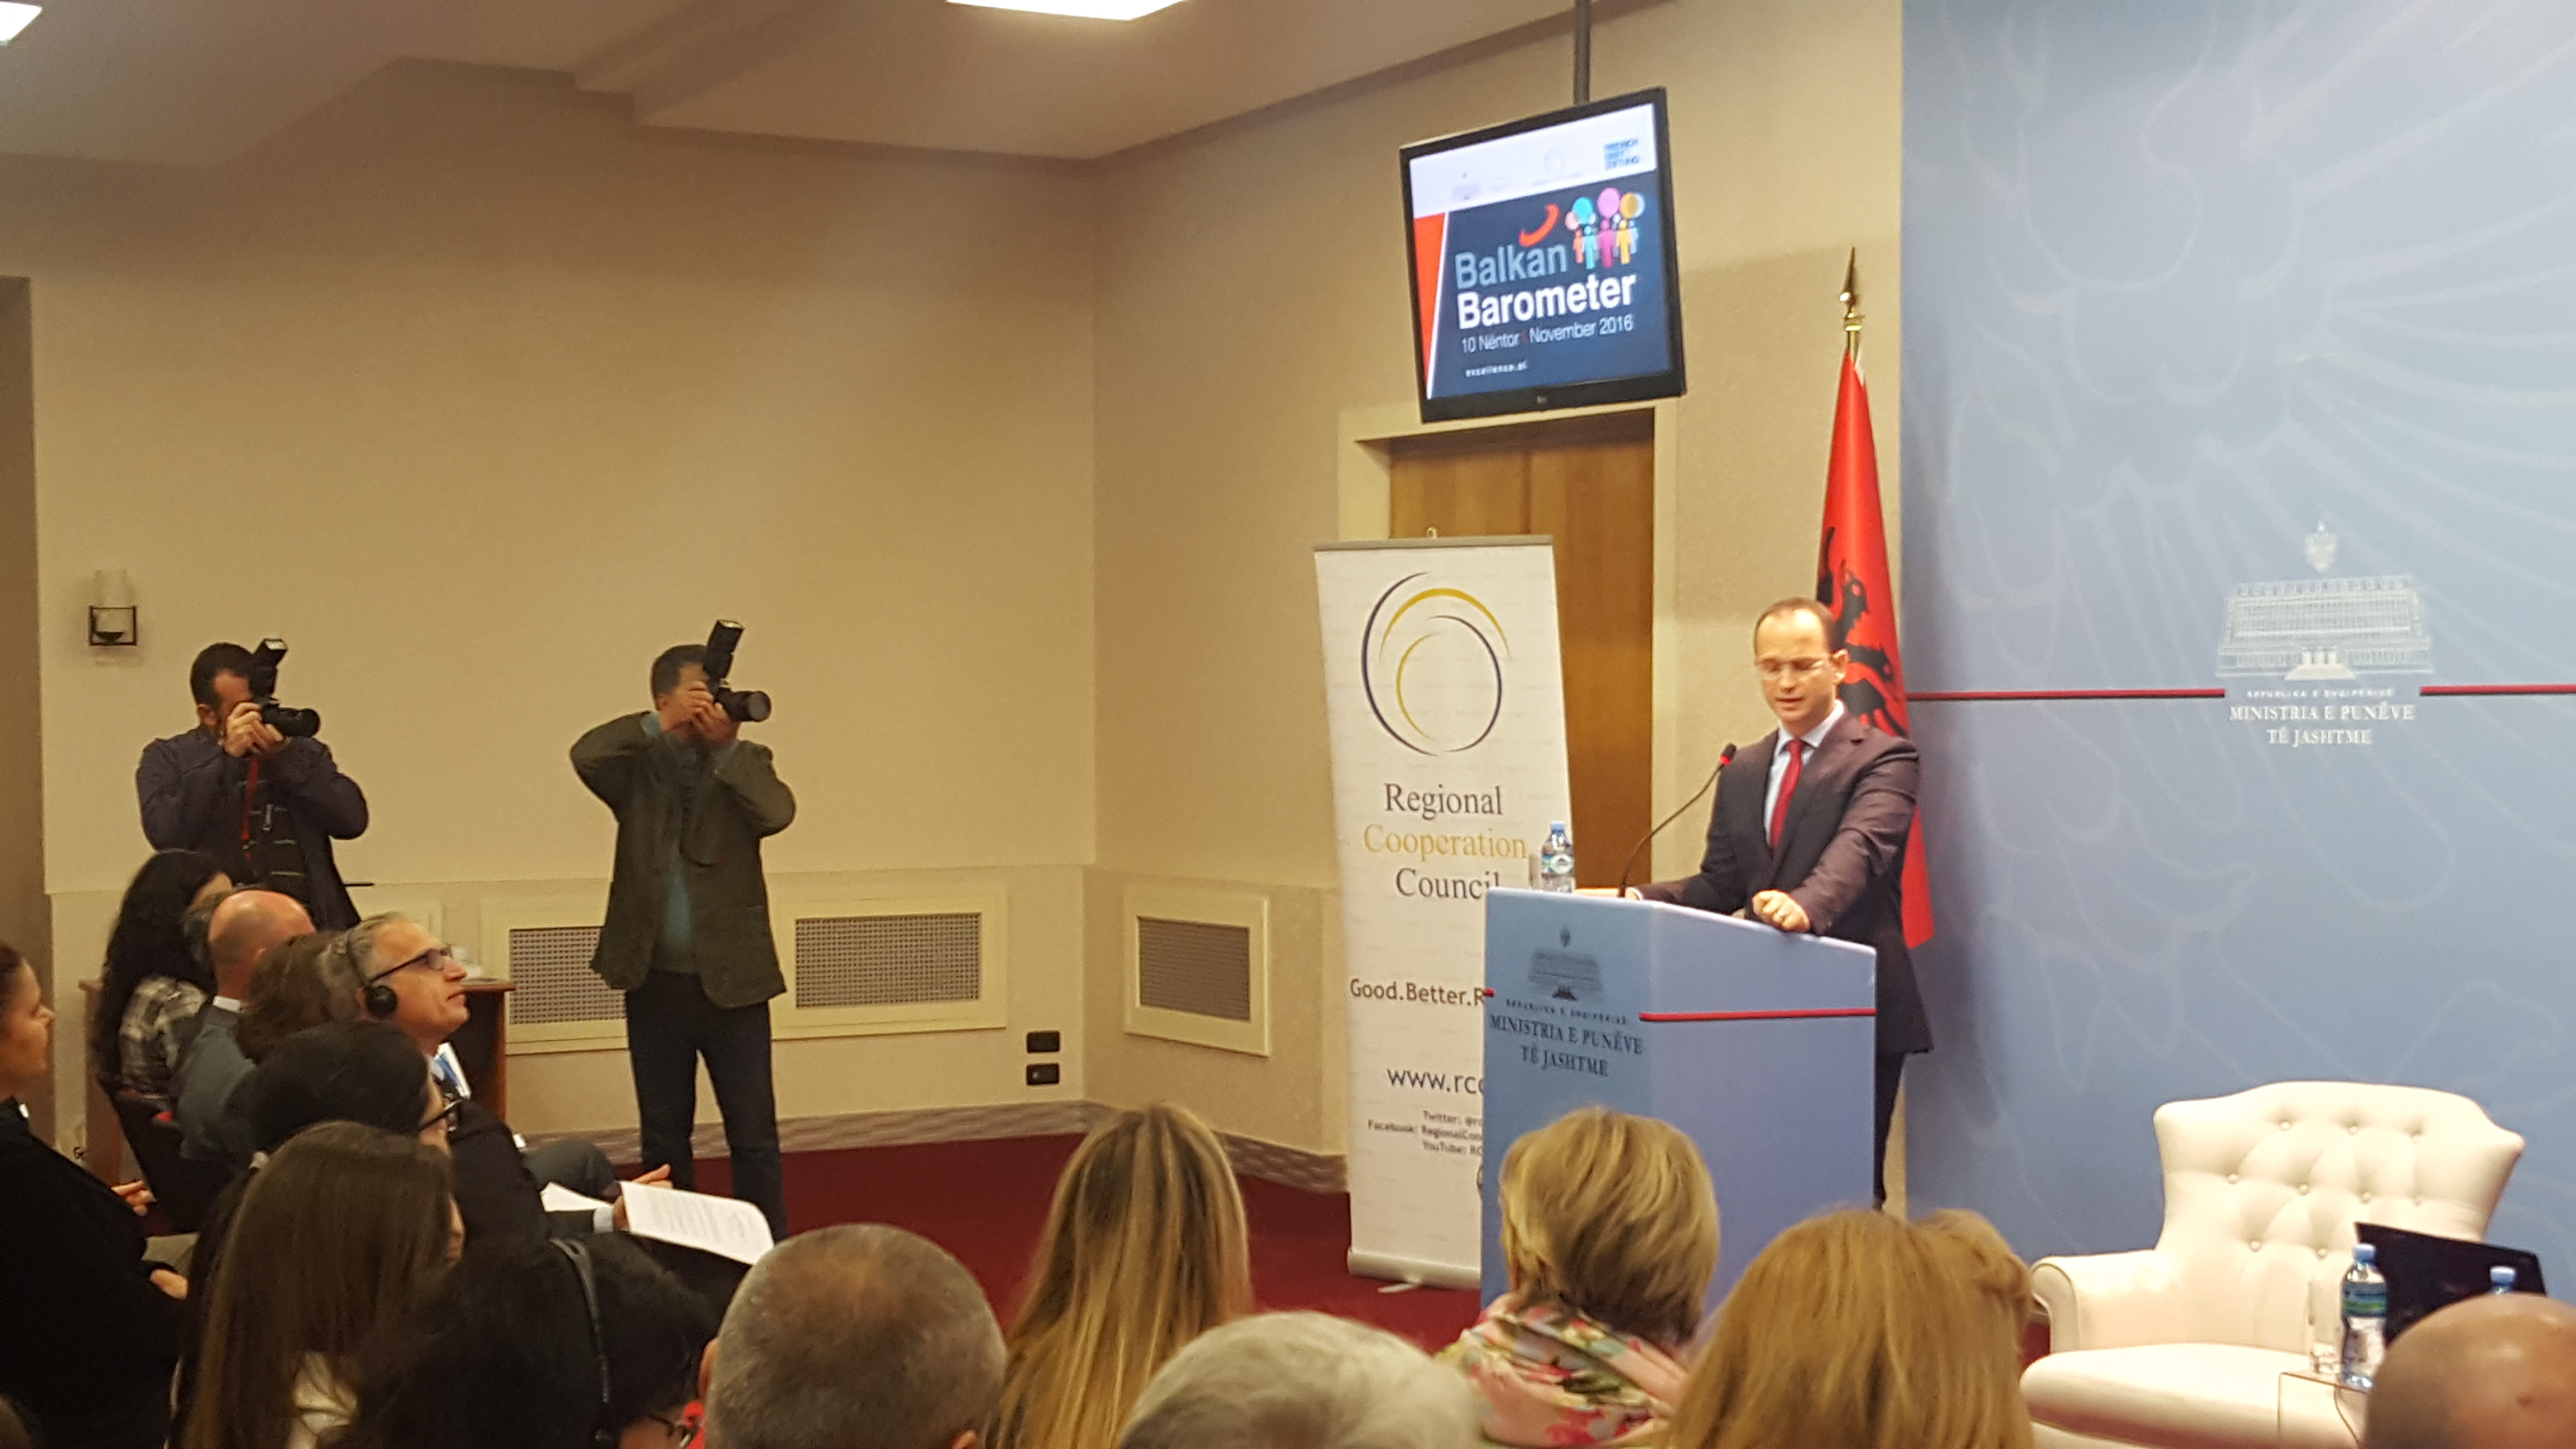 Albanian Minister of Foreign Affairs, Ditmir Bushati, presenting the findings of Balkan barometer 2016 about the sentiments of Albanian general public on EU integration, at the Balkan Barometer 2016 presentation held in Tirana on 10 November 2016 (Photo: RCC/Alma Arslanagic Pozder)